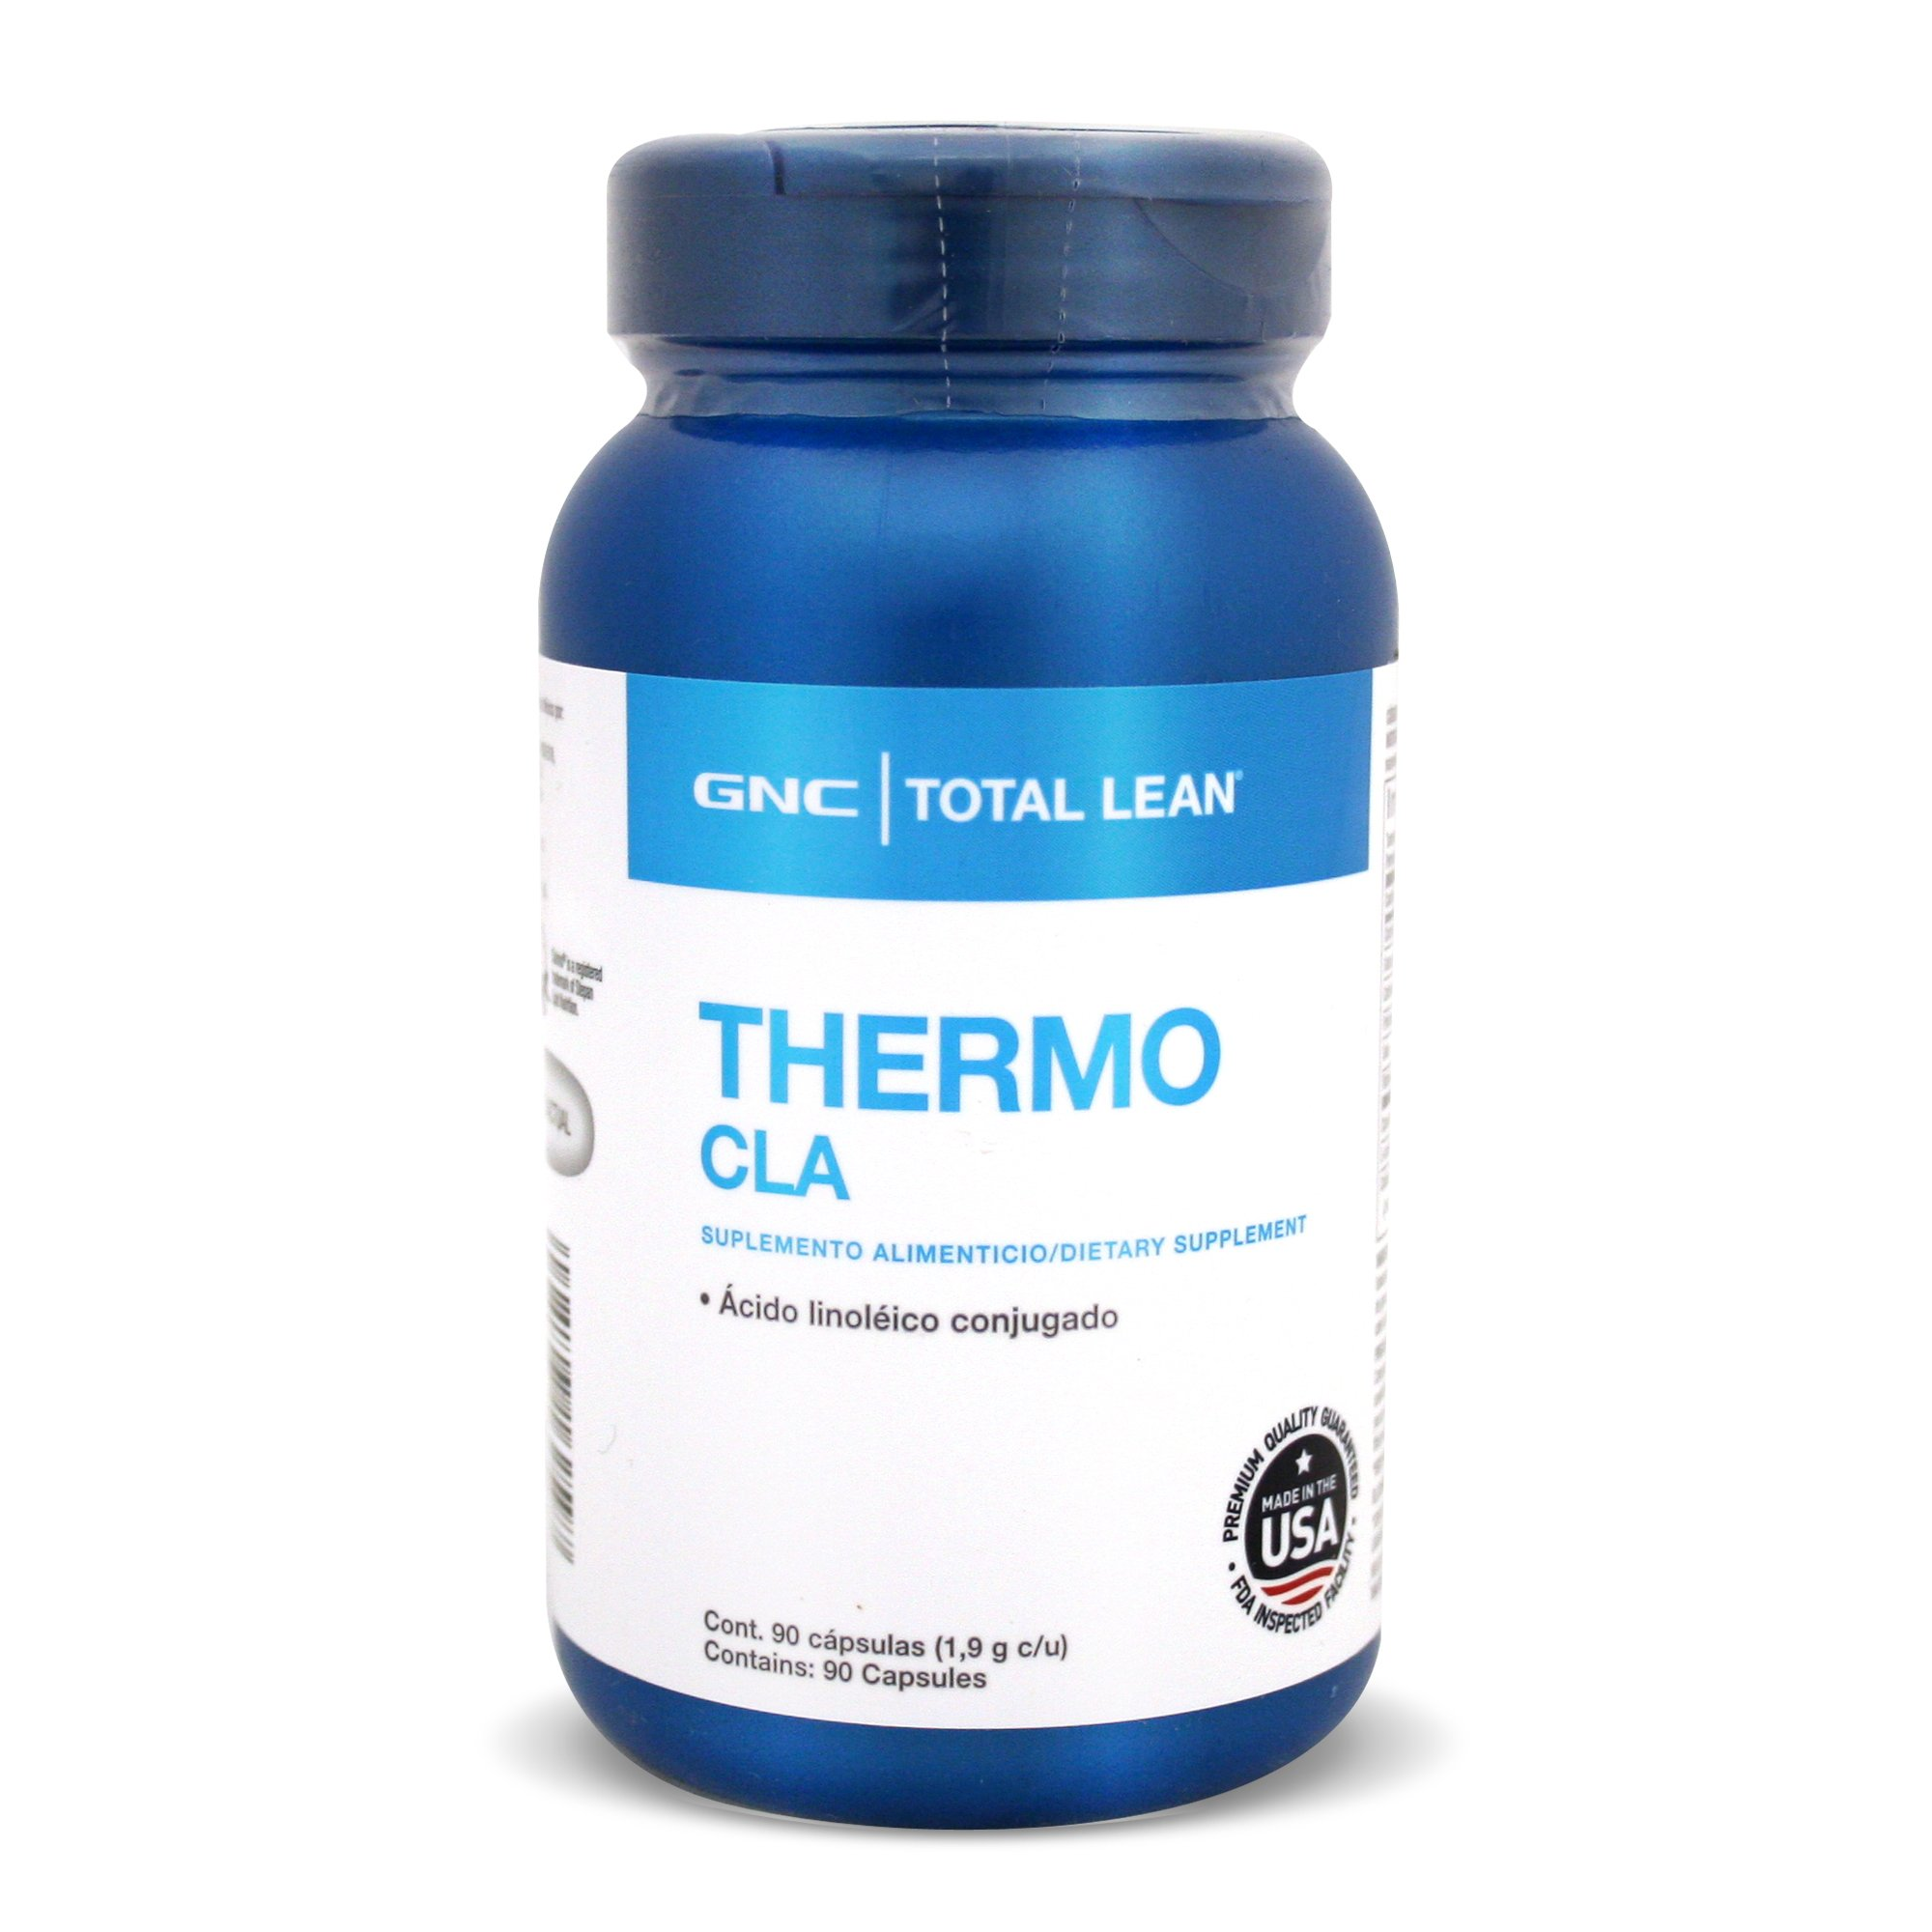 GNC Total Lean Thermo CLA for Healthy Body Composition and Lean Muscle Maintenance - 90 Count by GNC (Image #1)